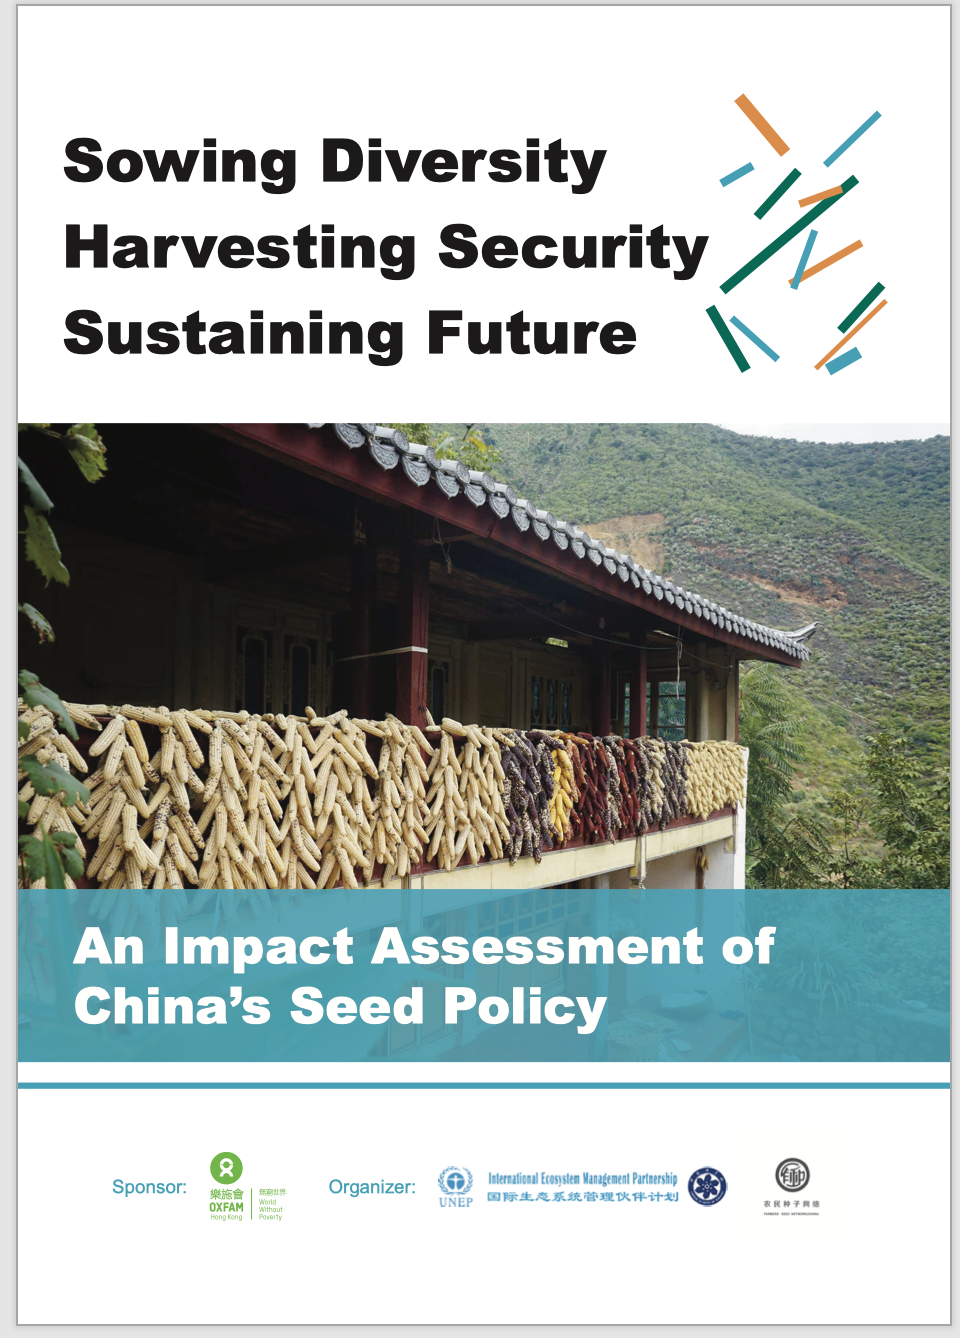 Sowing Diversity Harvesting Security Sustaining Future